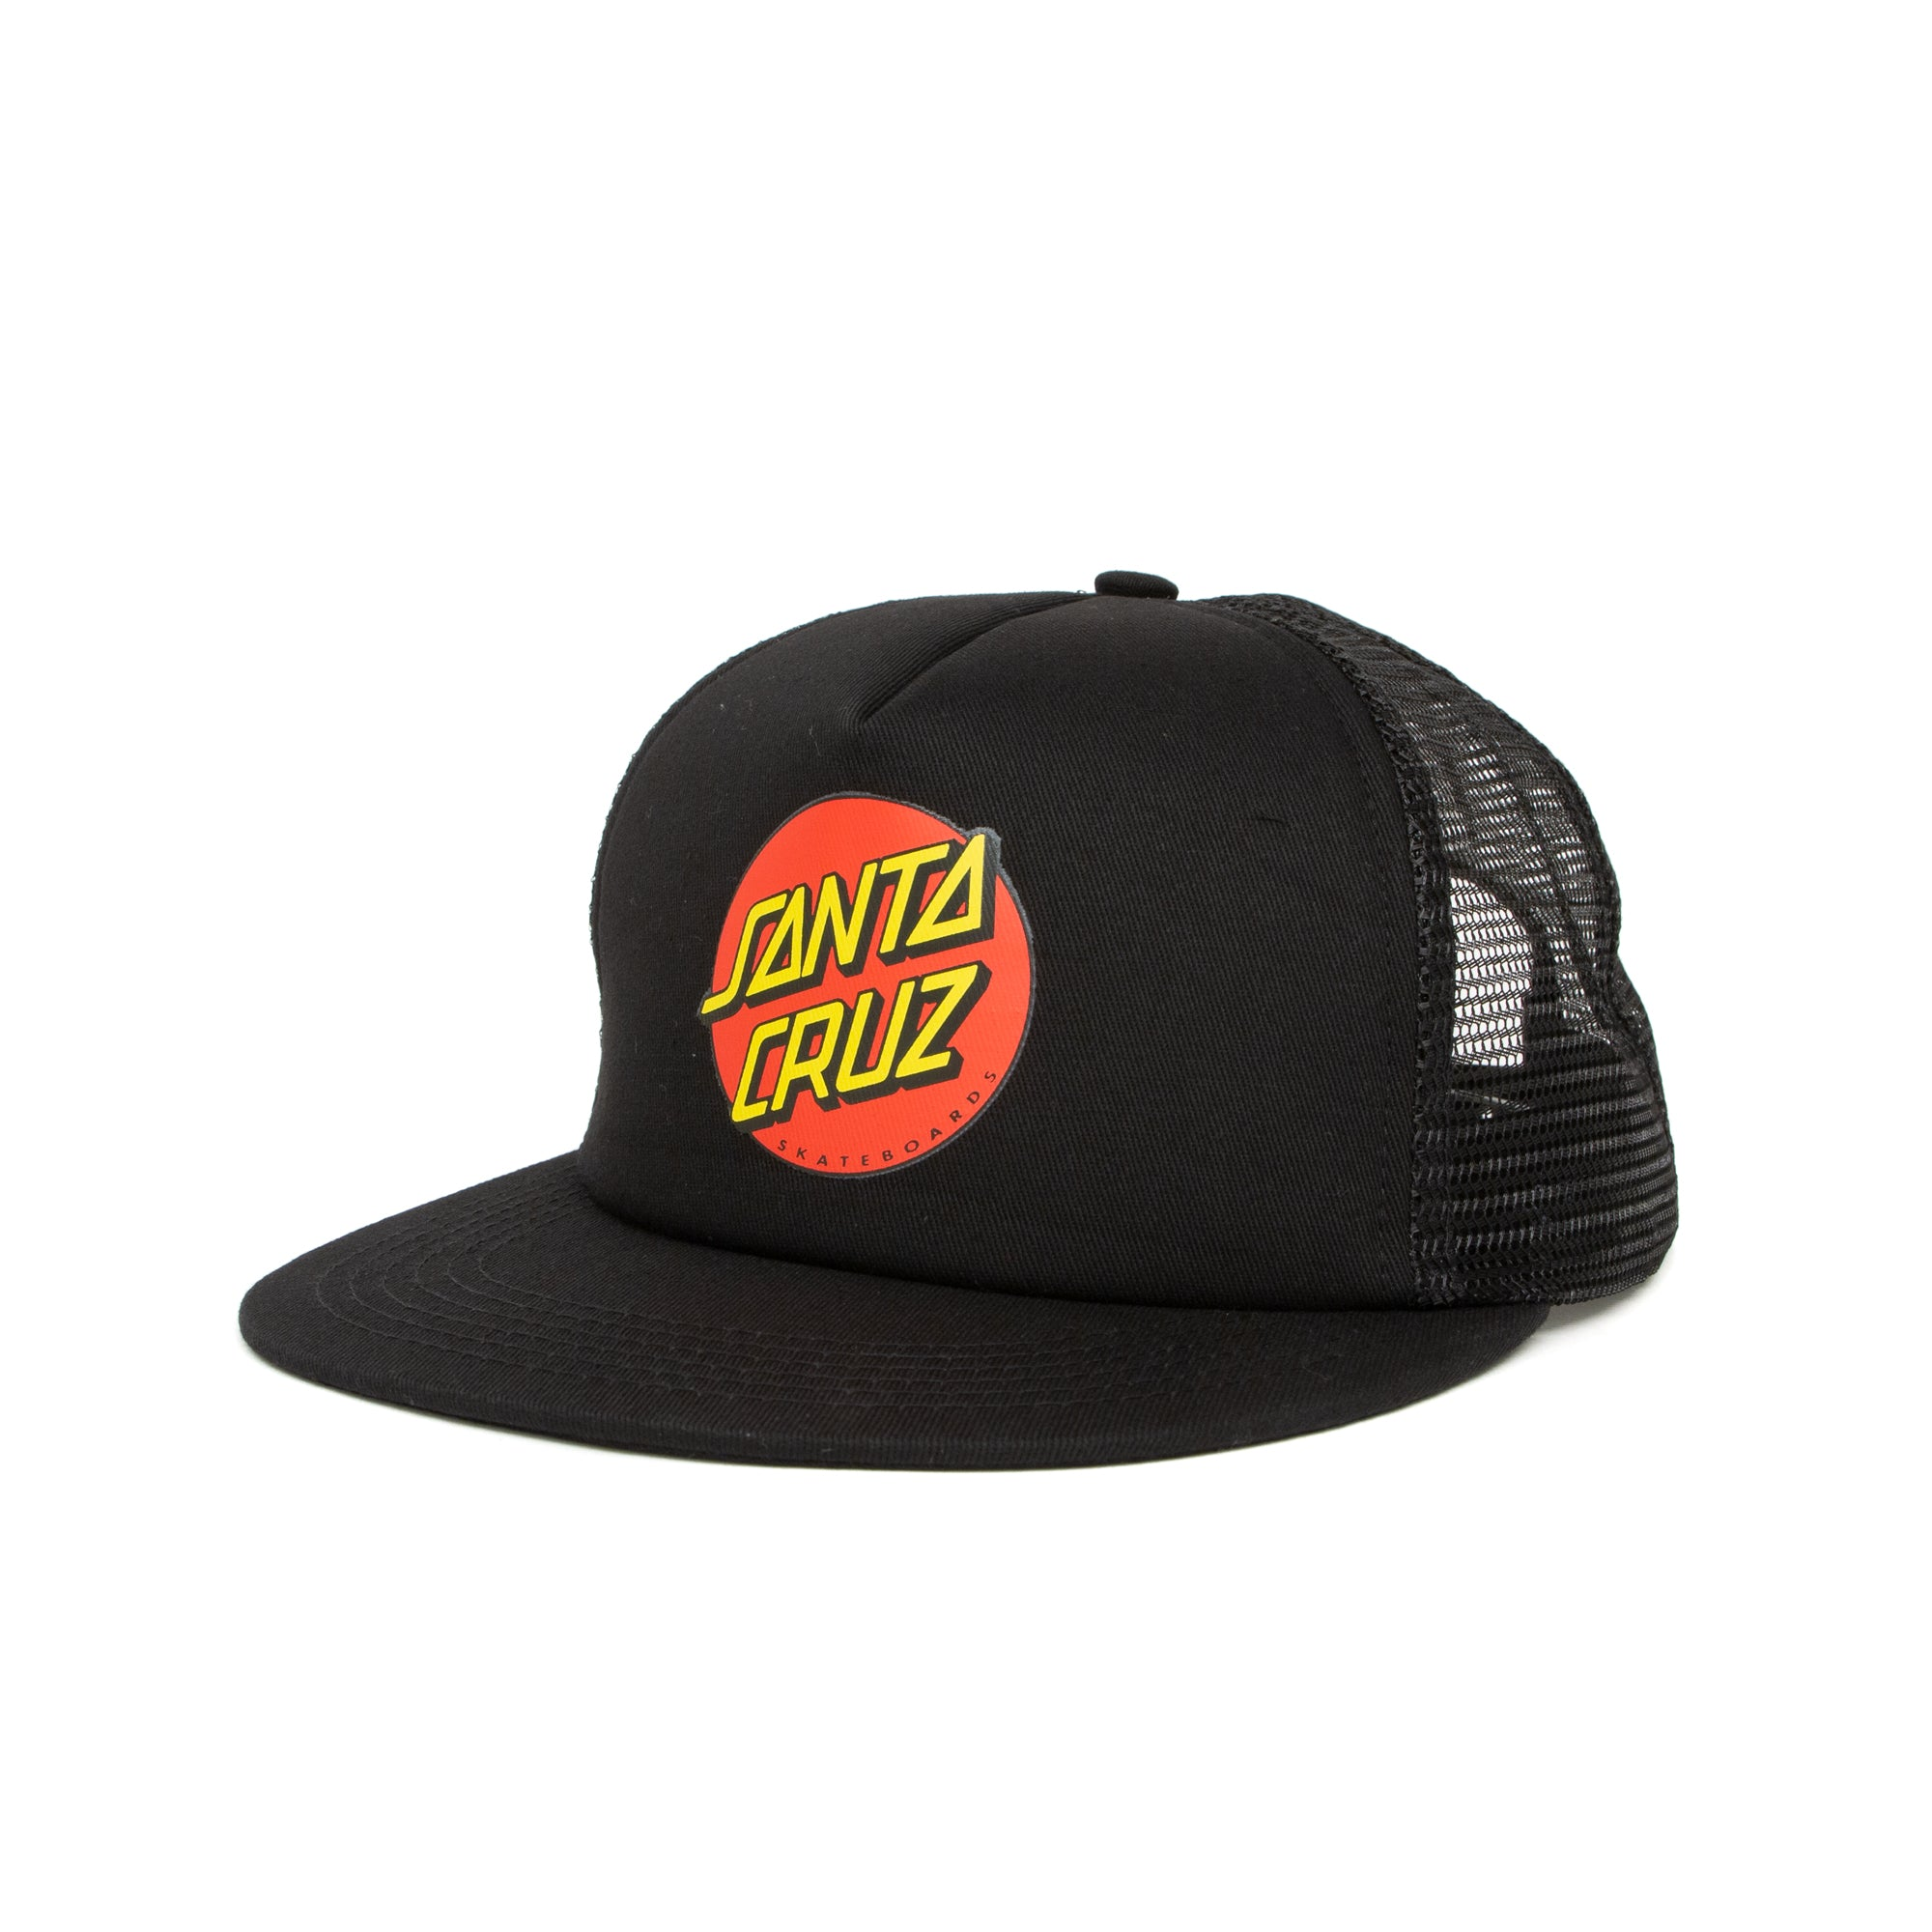 Santa Cruz Classic Dot Mesh Trucker Cap - Black